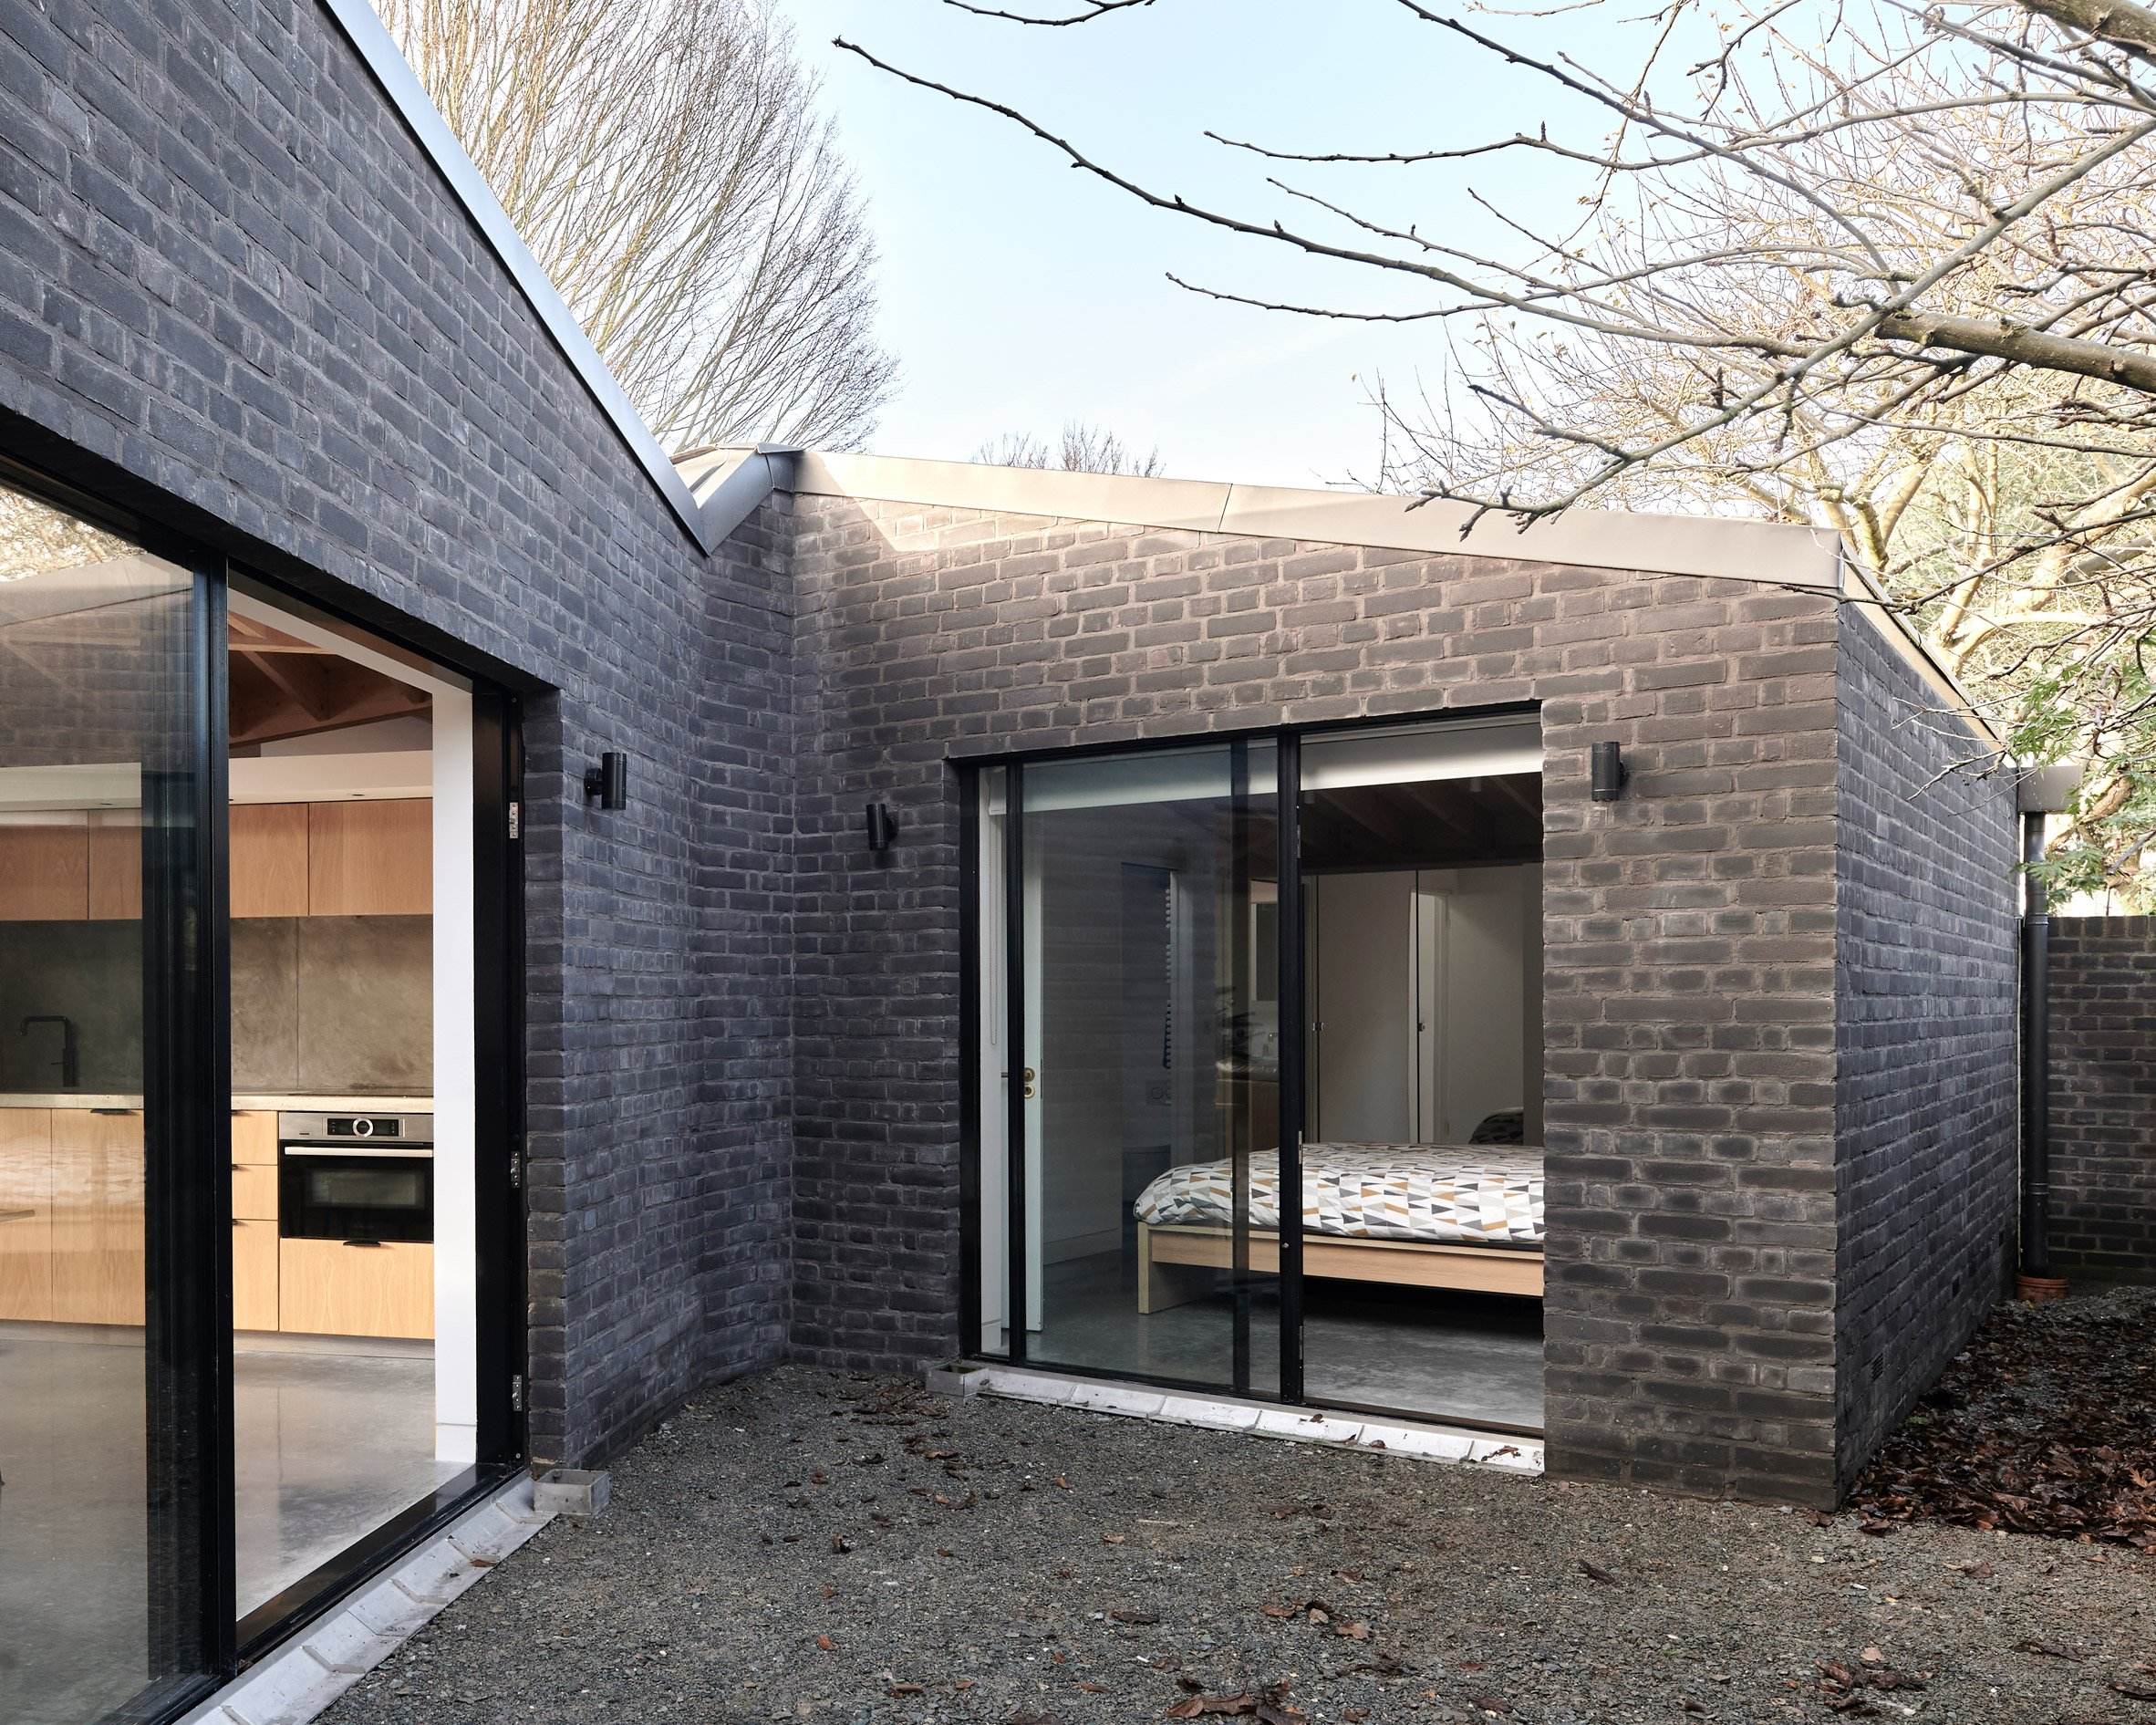 A London house clad in black brick